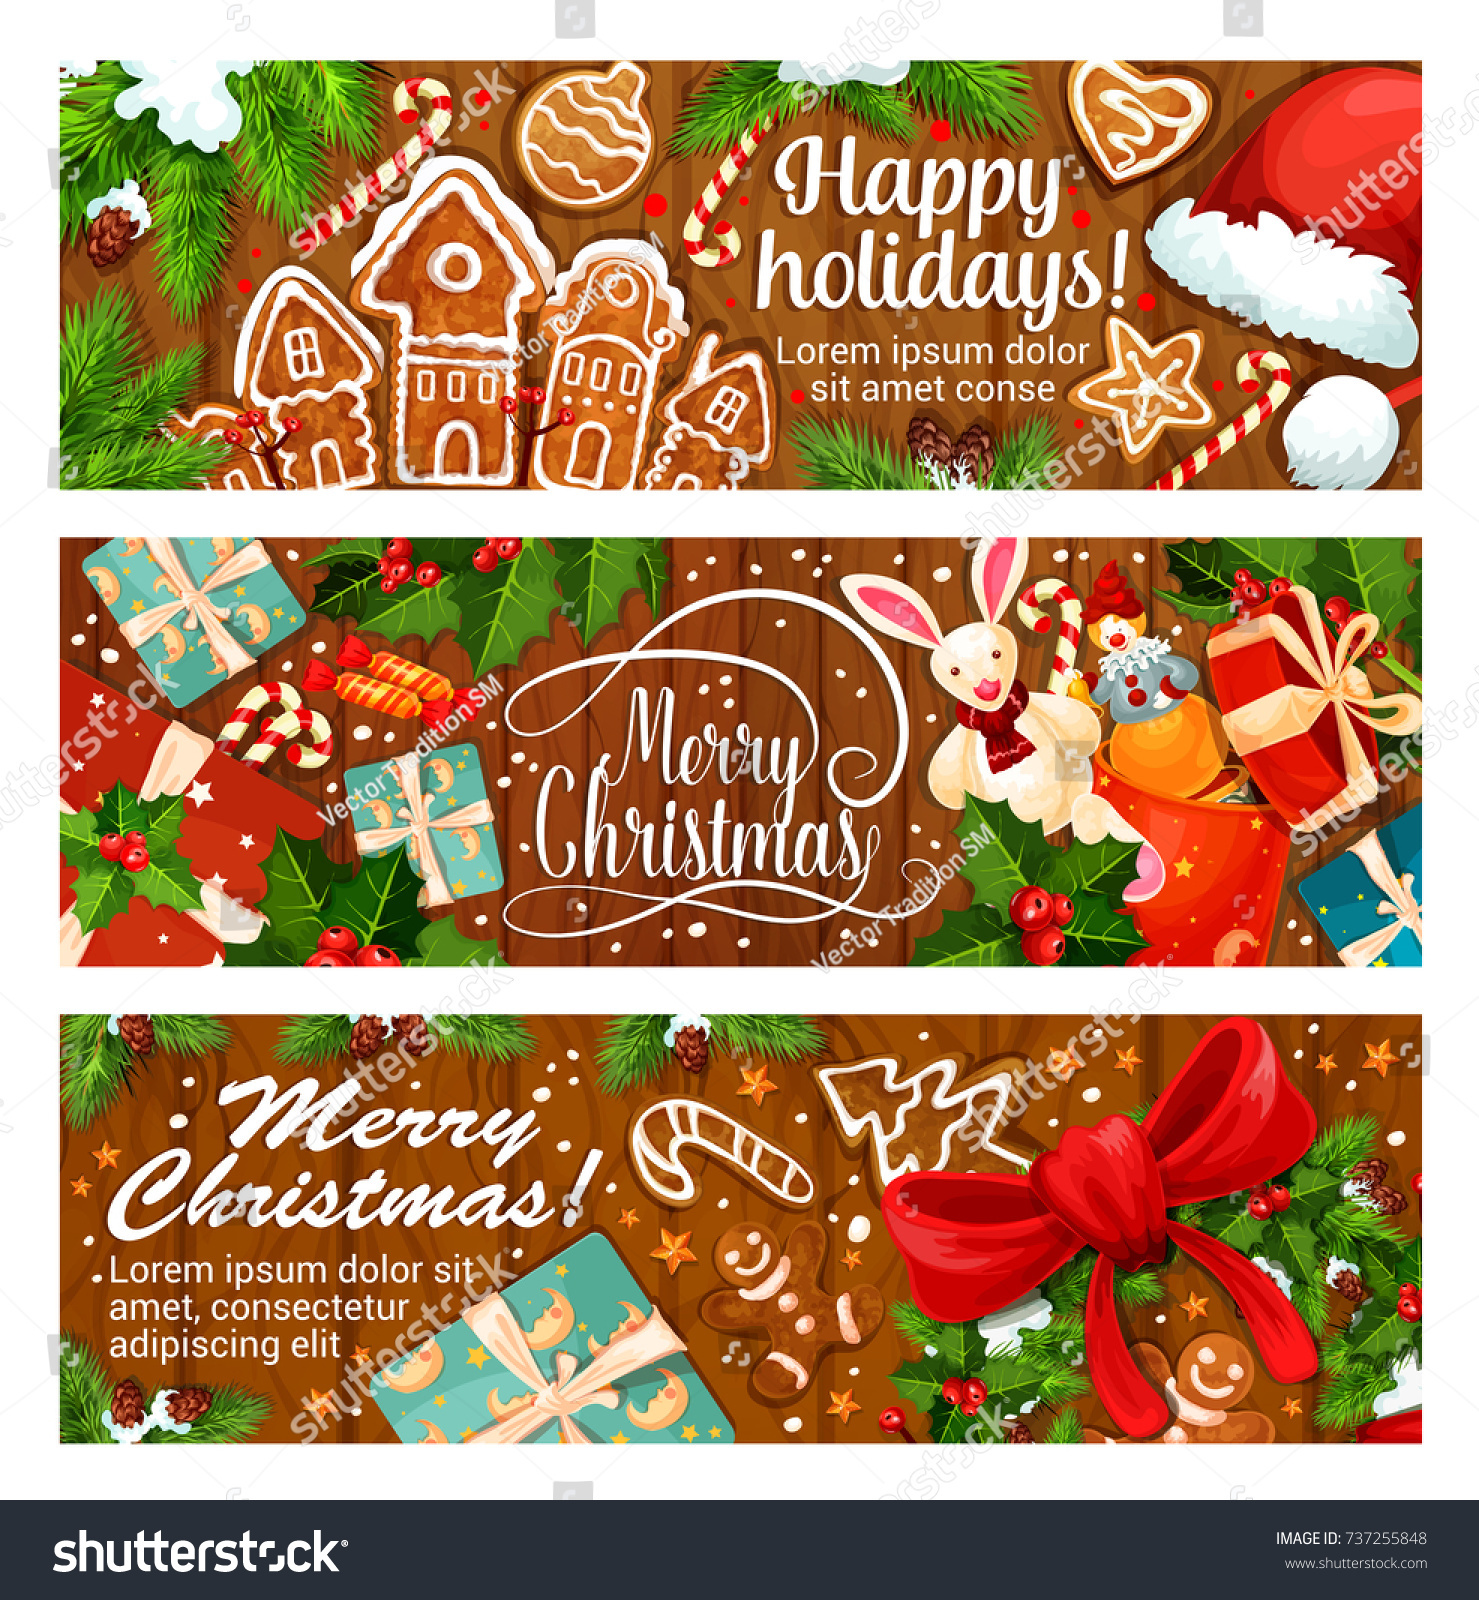 Merry Christmas Happy Holidays Wish Greeting Stock Vector Royalty